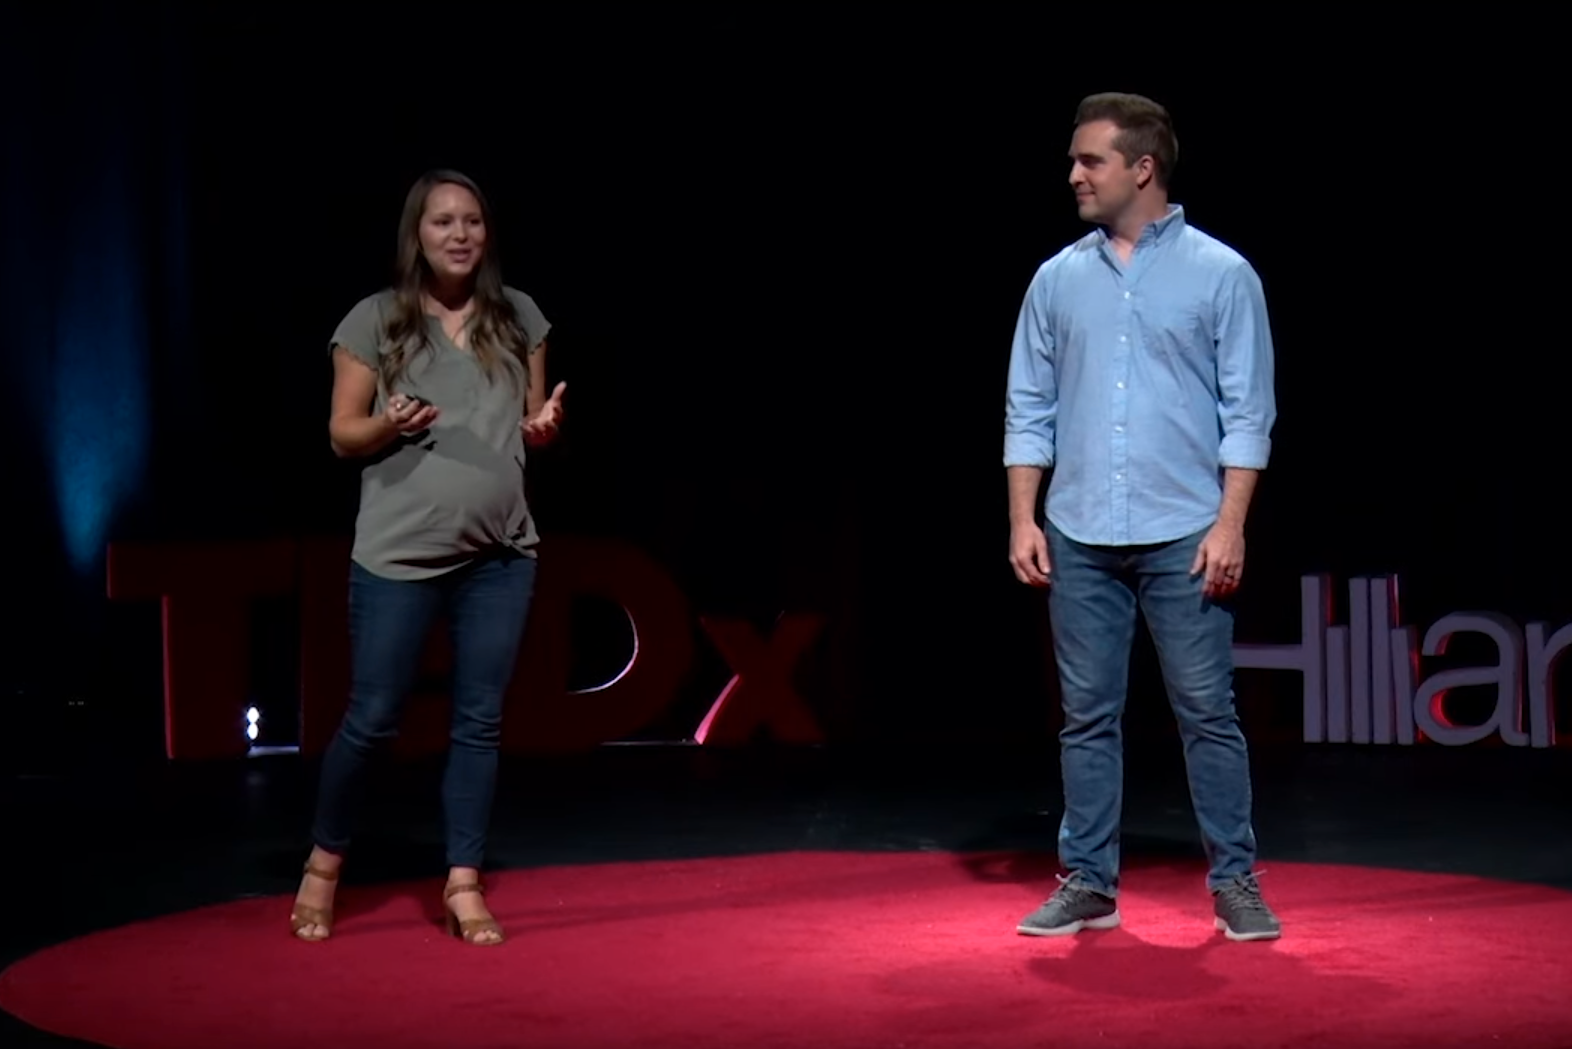 Facade Games Founders Speak on the TEDx Stage